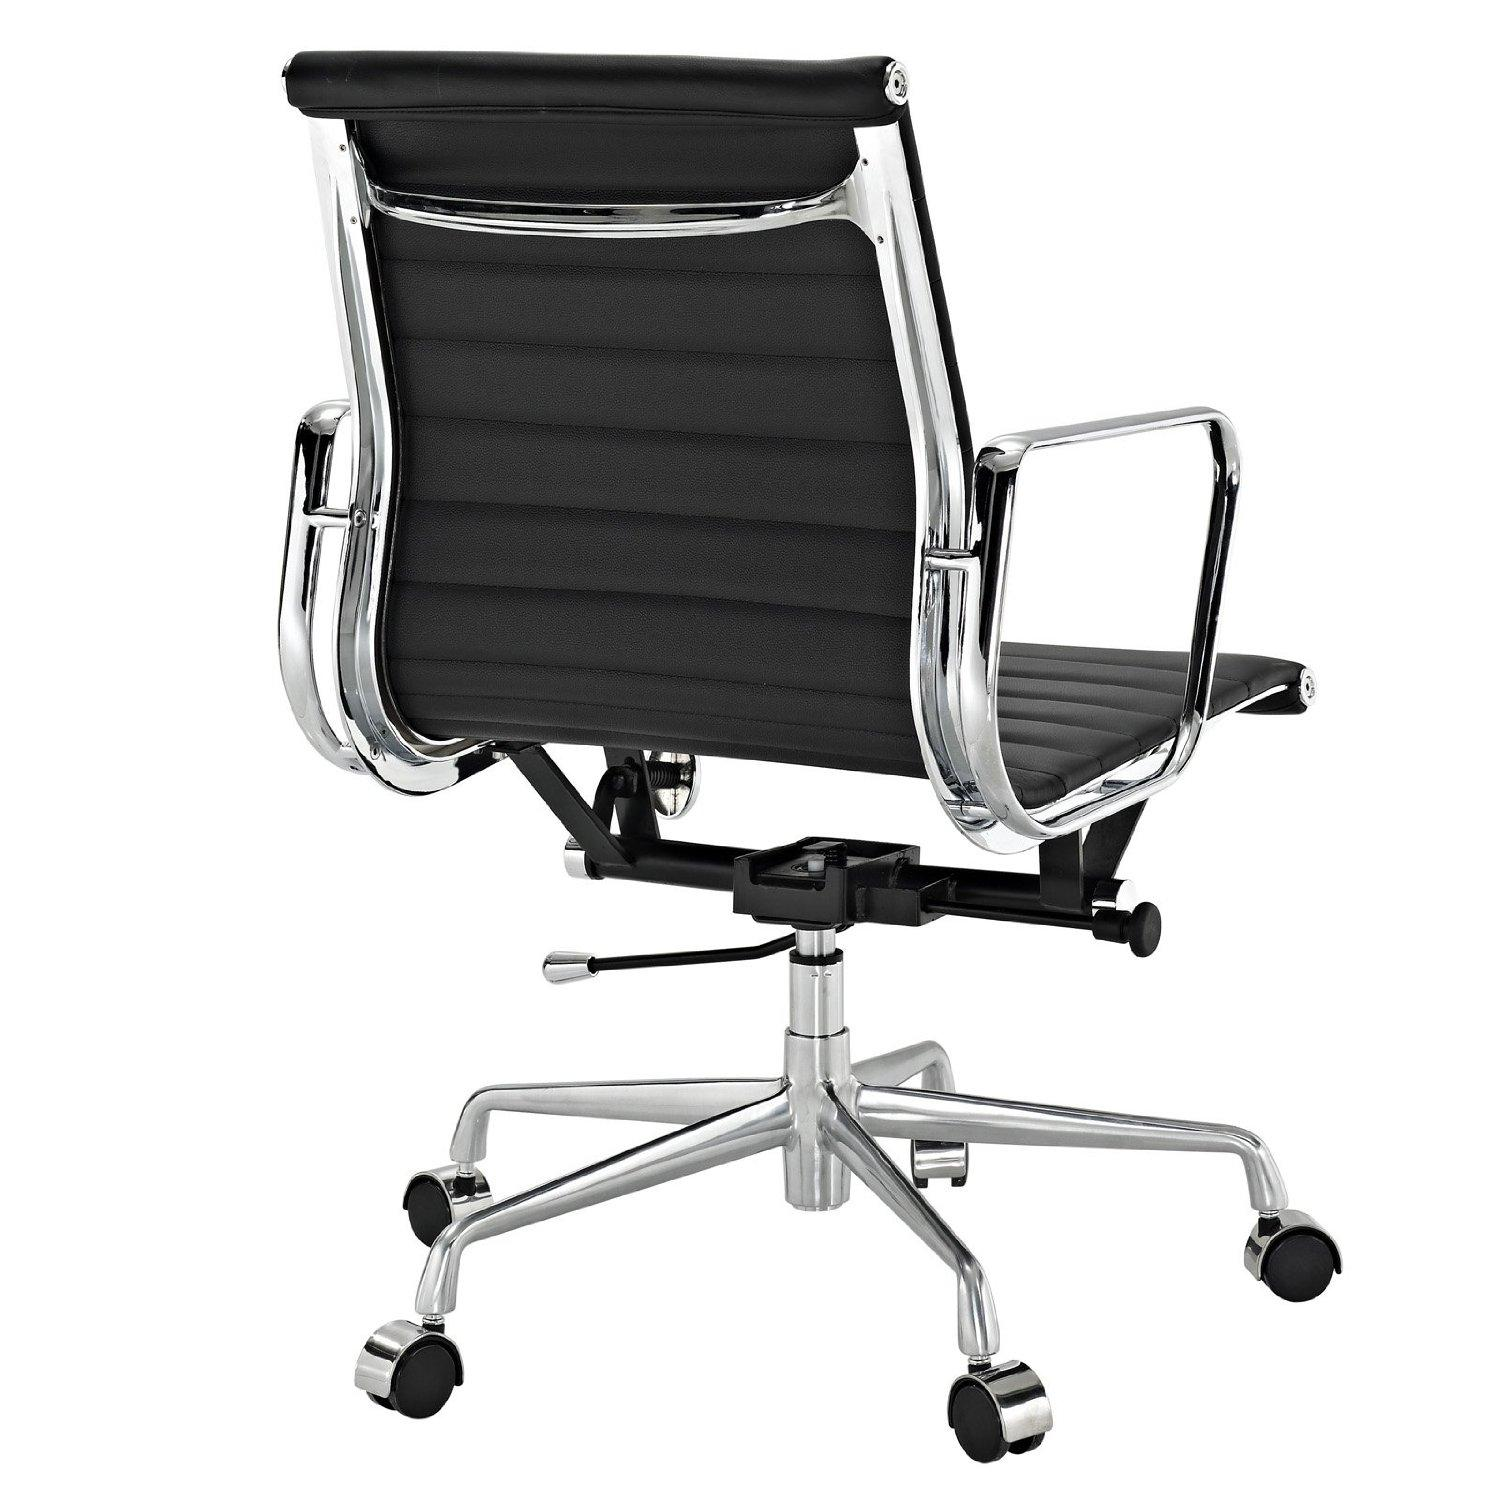 Modern leather office chair - View Larger